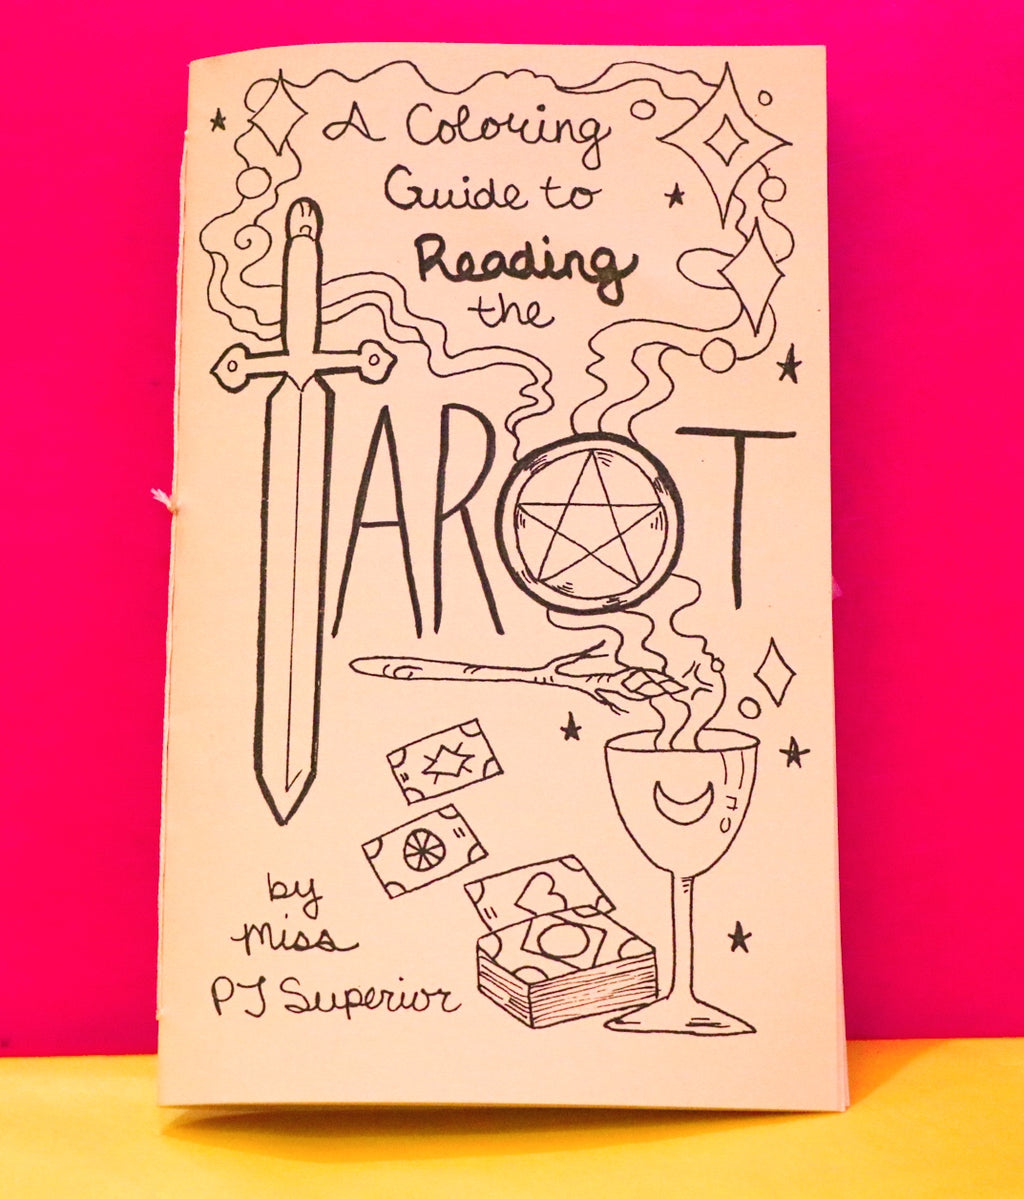 A coloring book guide to reading tarot featuring hand drawn images